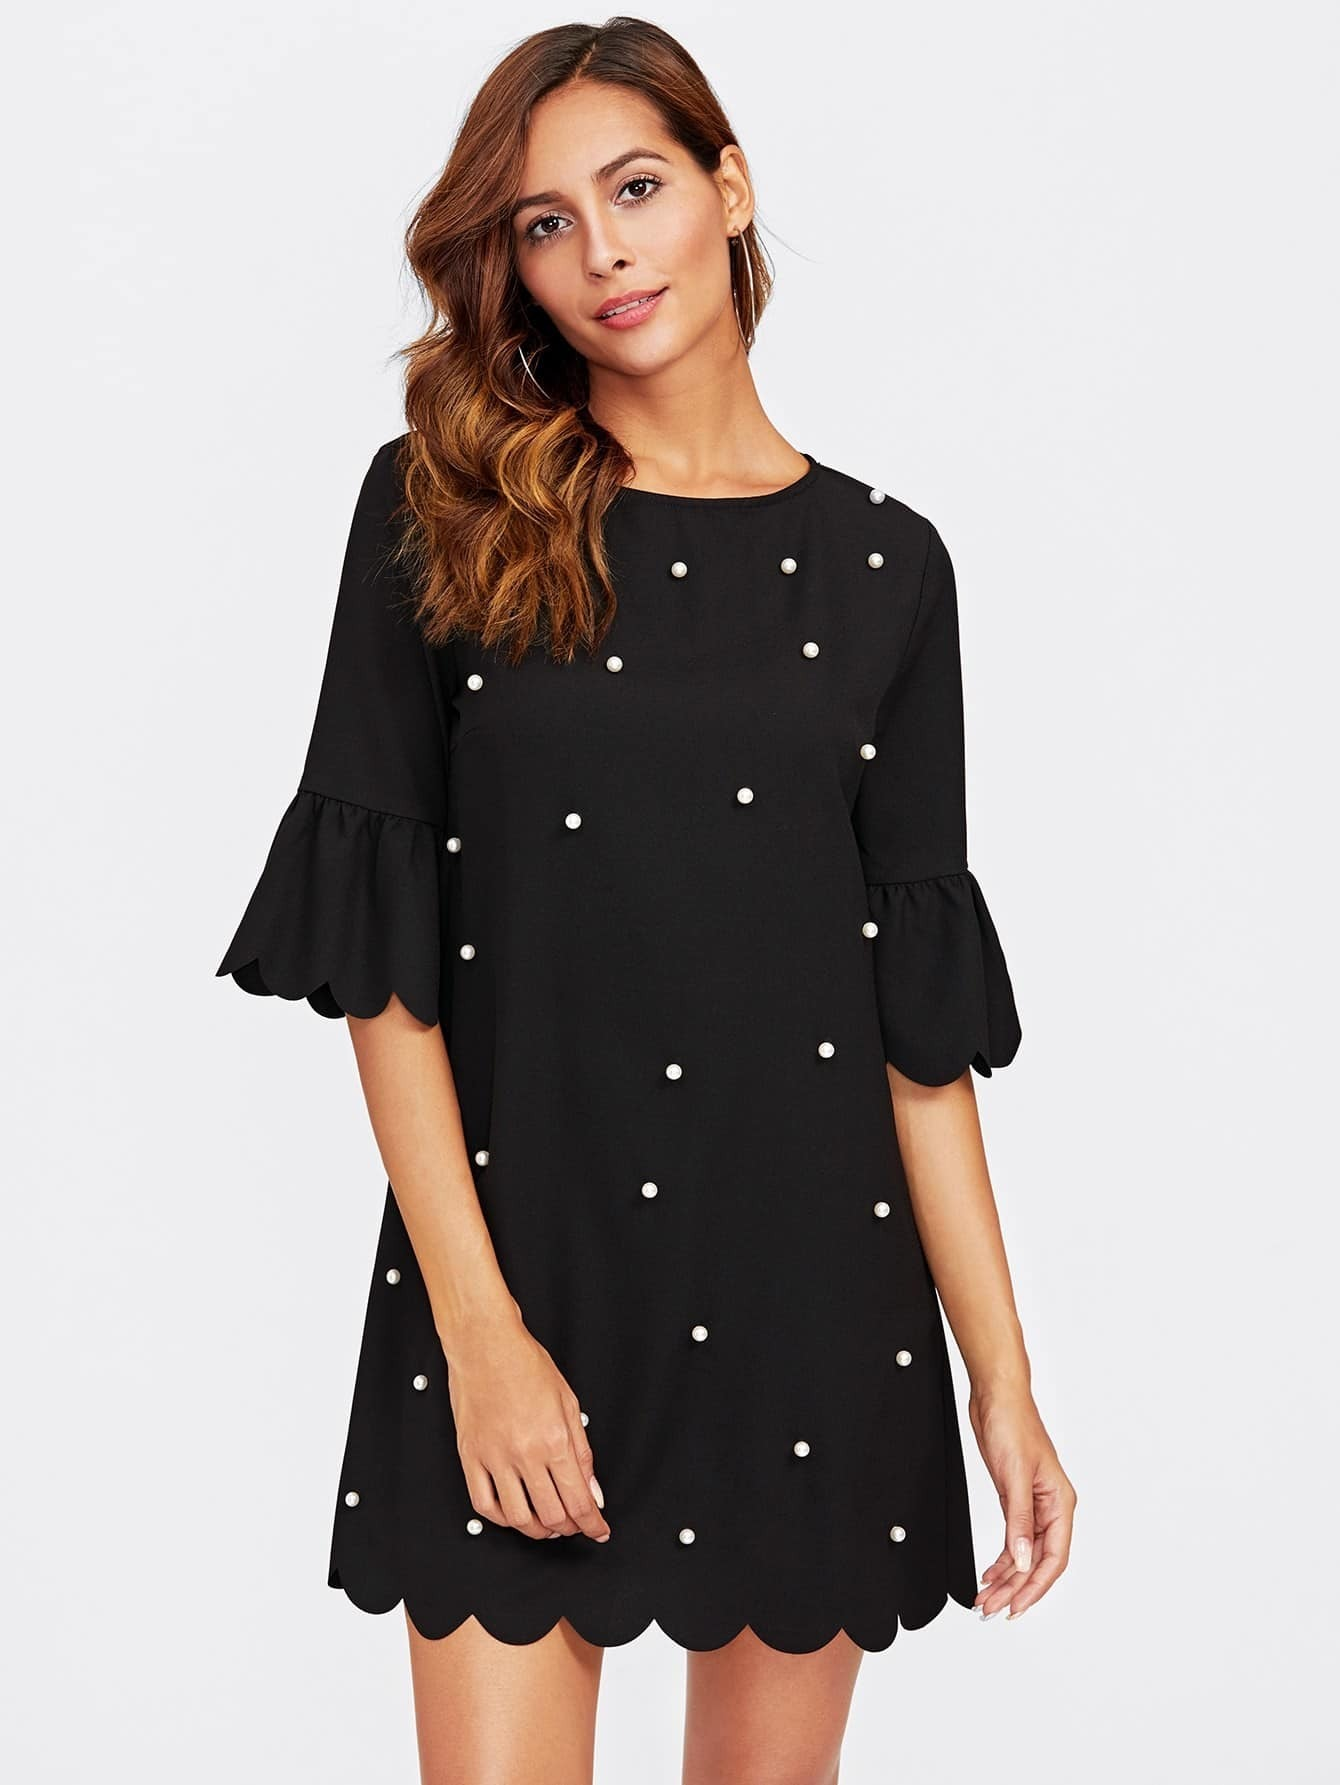 Trumpet Sleeve Pearl Beading Scalloped Dress dress170920720